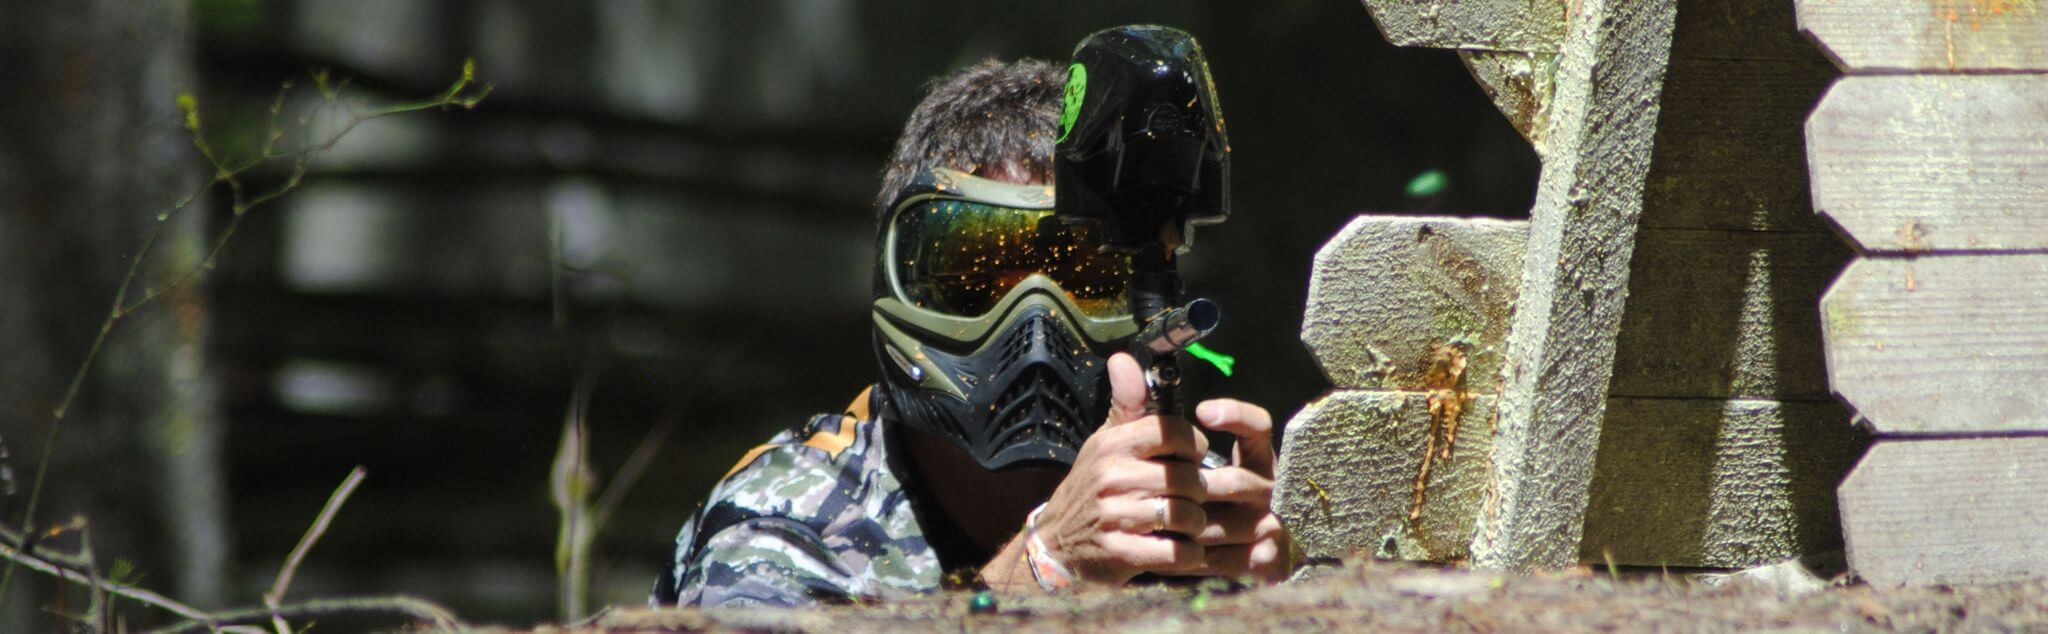 Paintball in Harrogate